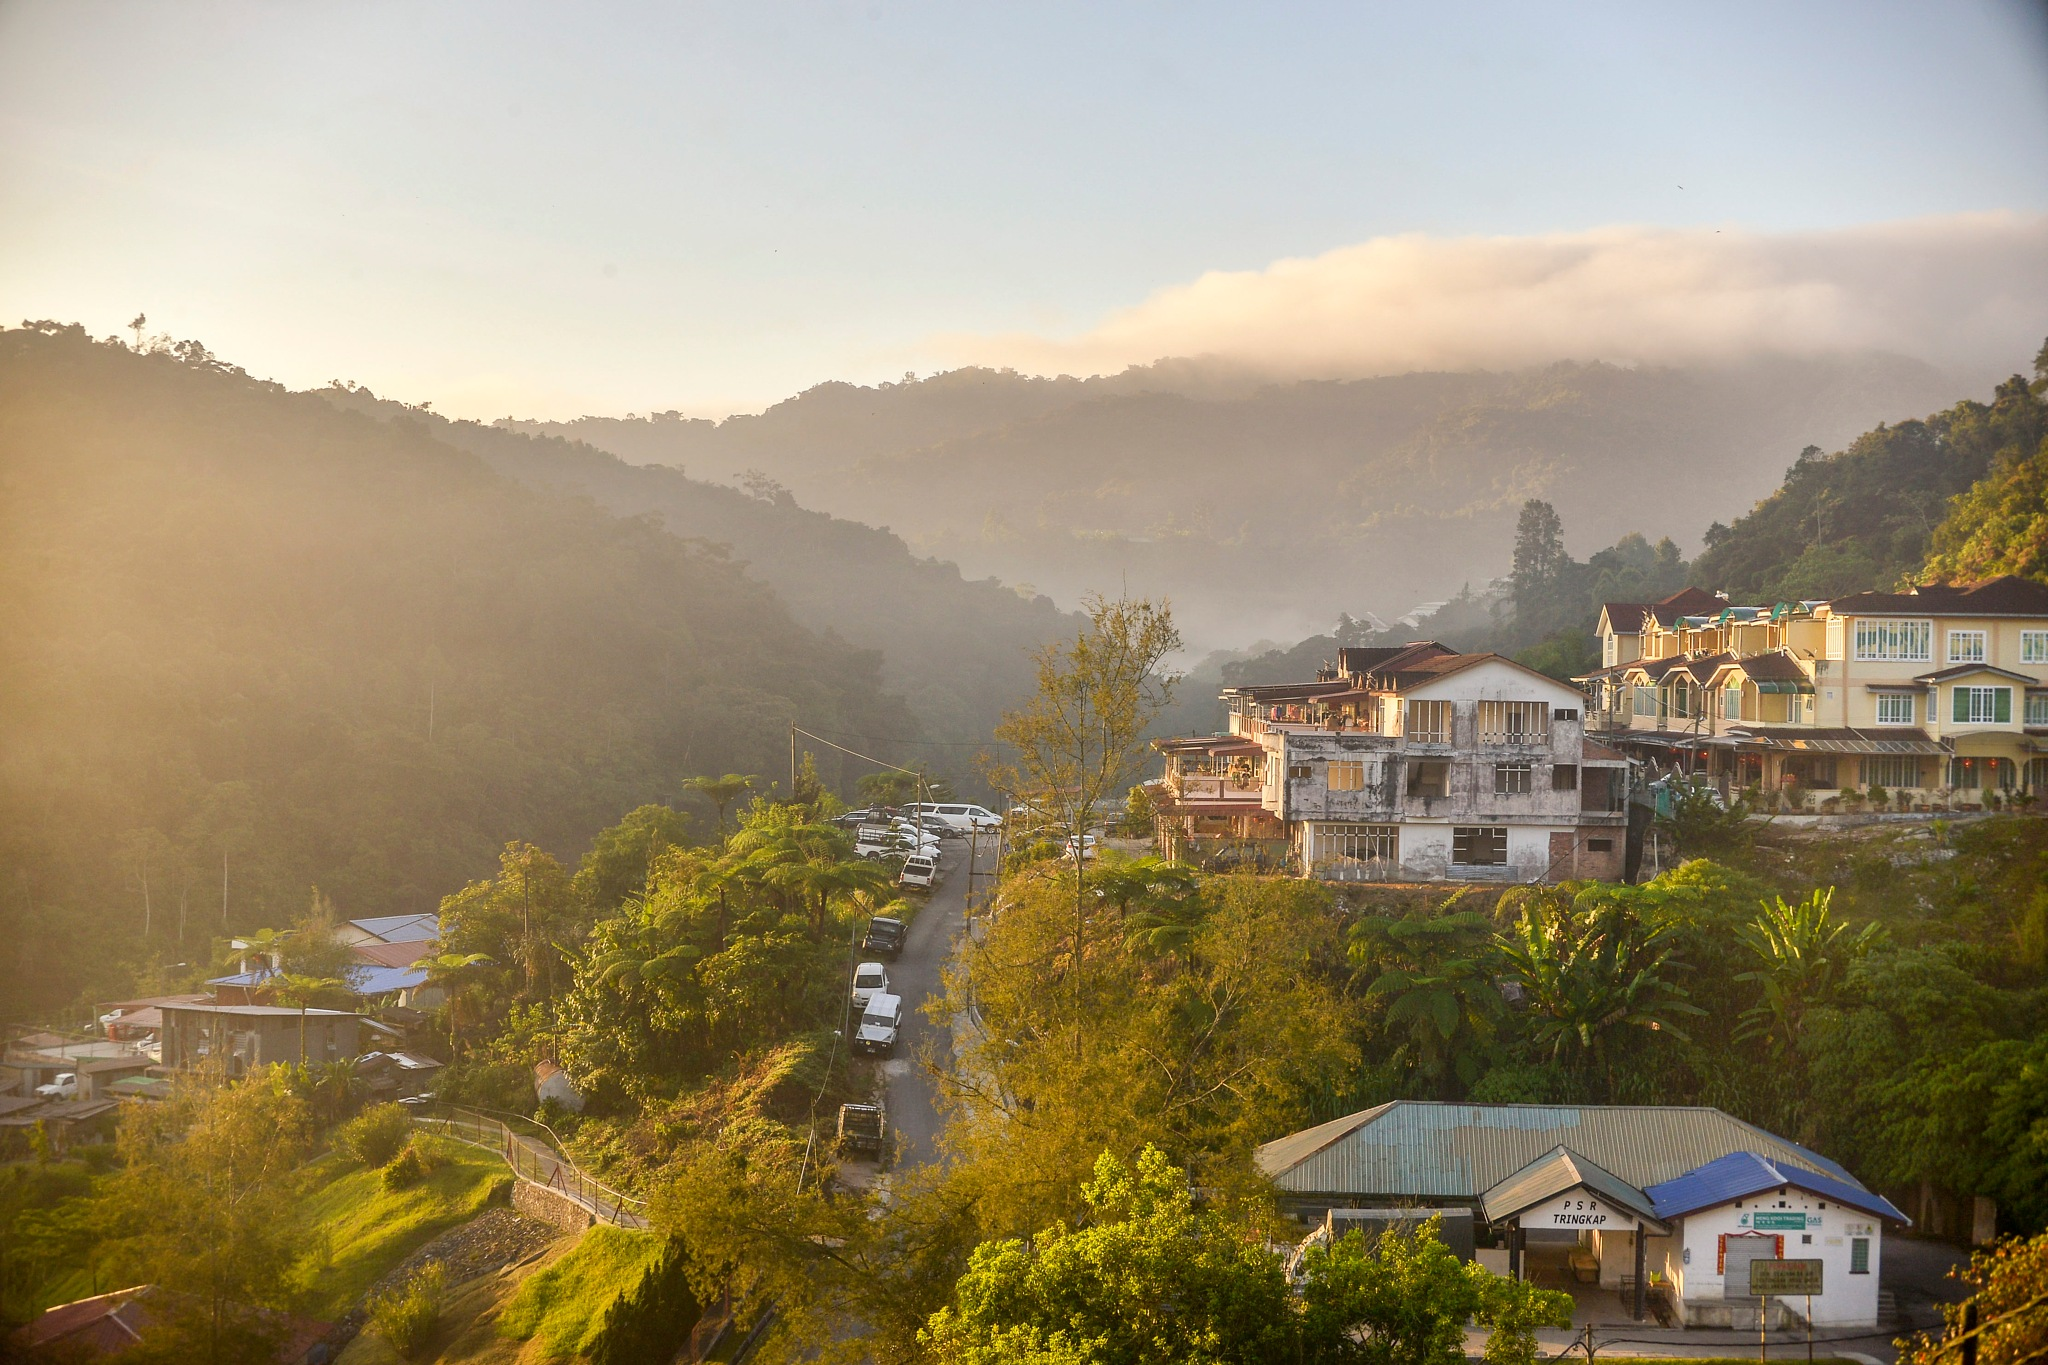 foggy morning at houses in mountain  by garywlyip